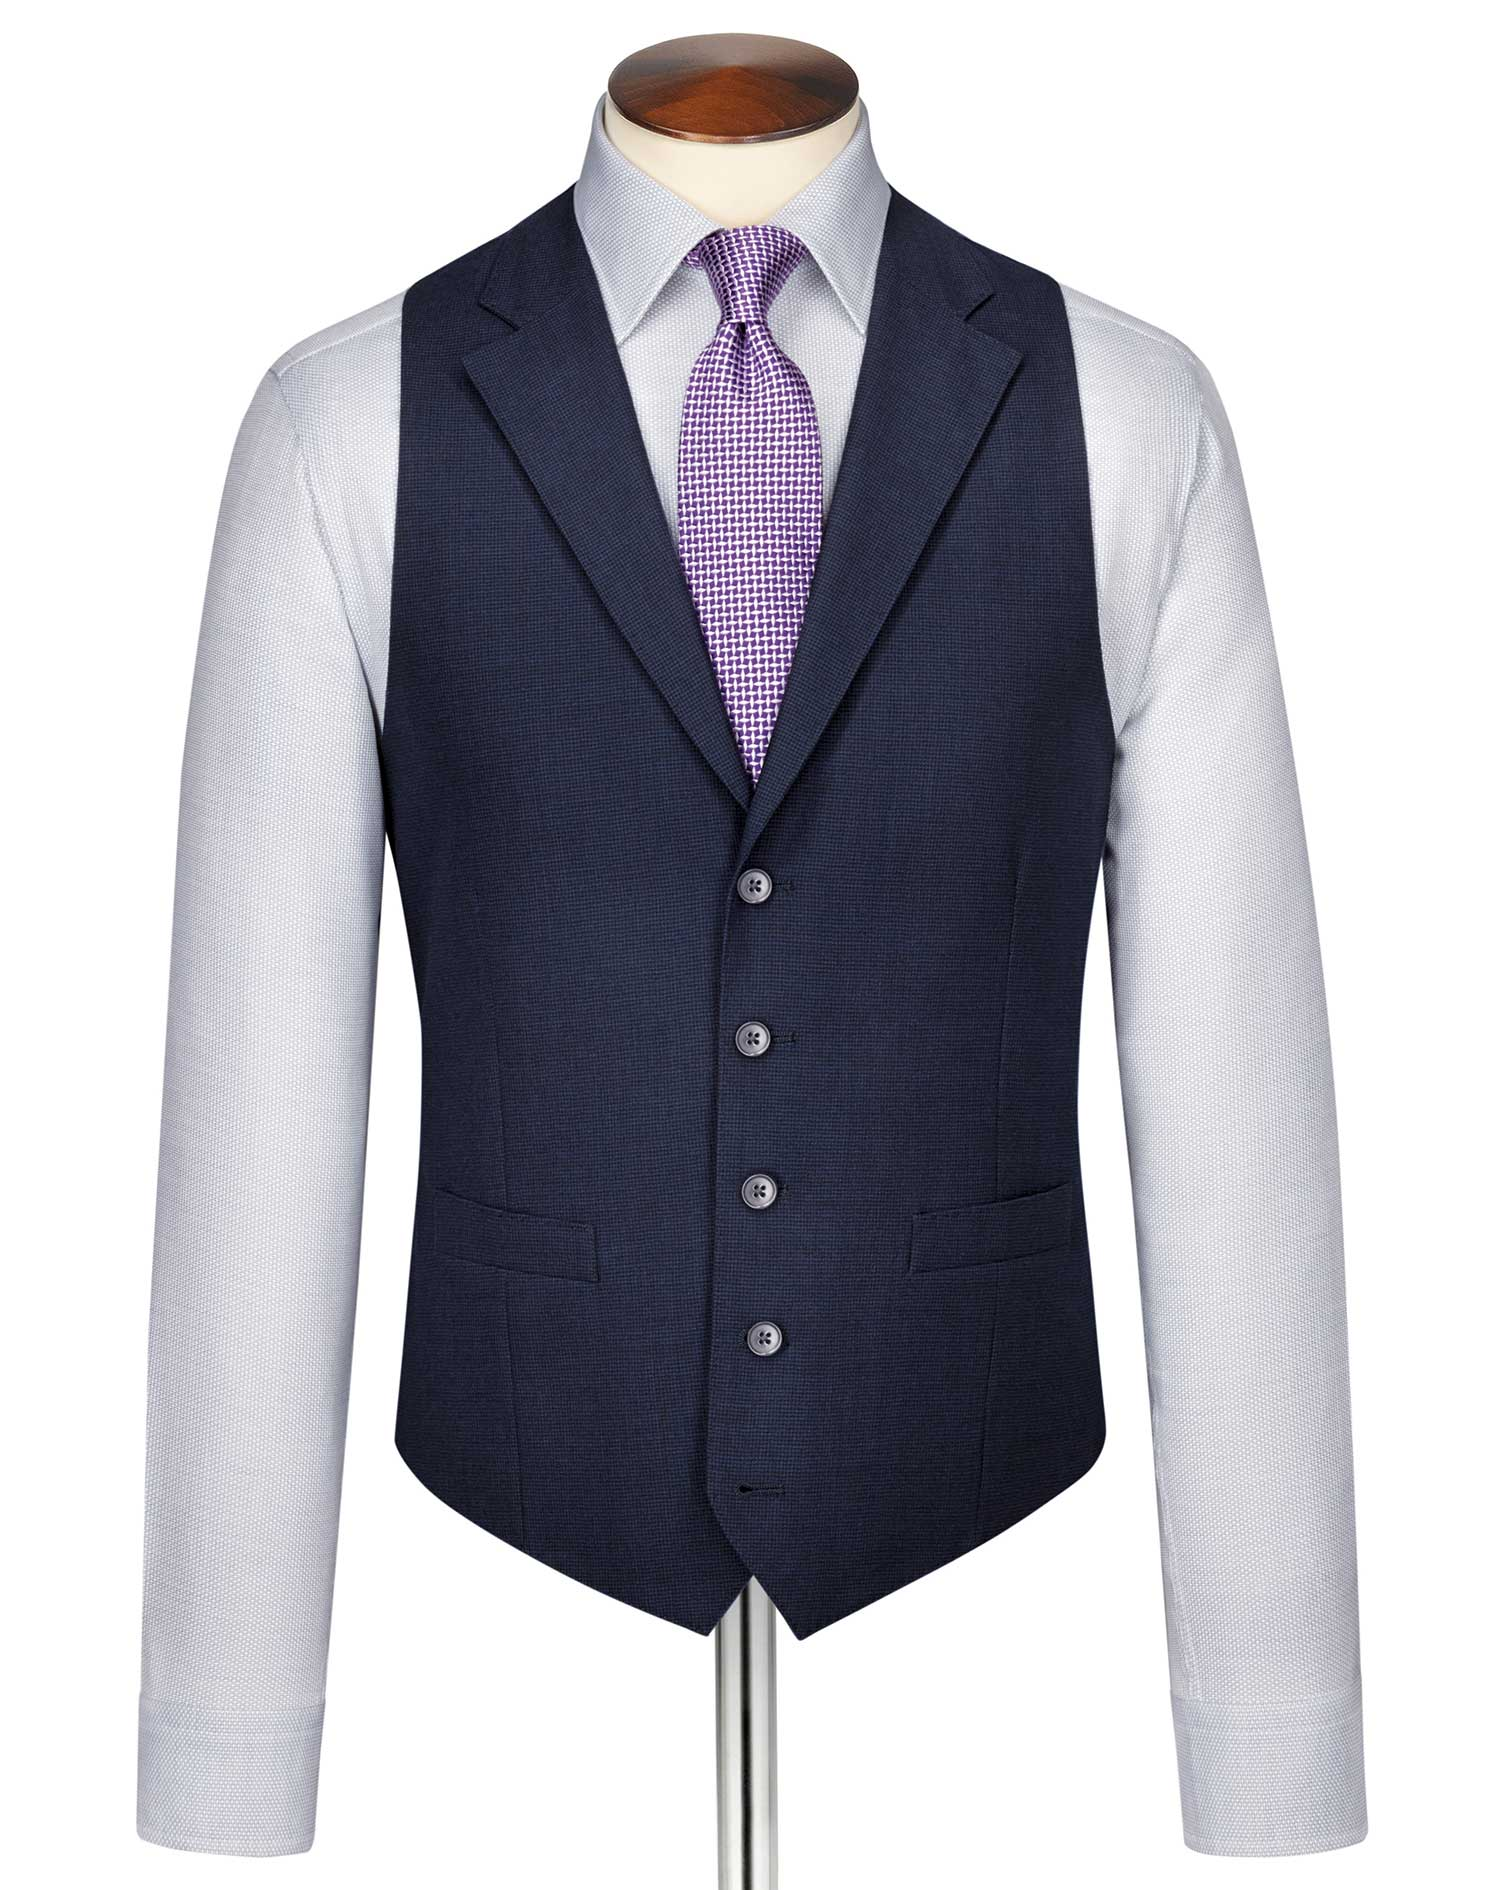 Indigo Blue Puppytooth Panama Business Suit Wool Waistcoat Size w44 by Charles Tyrwhitt